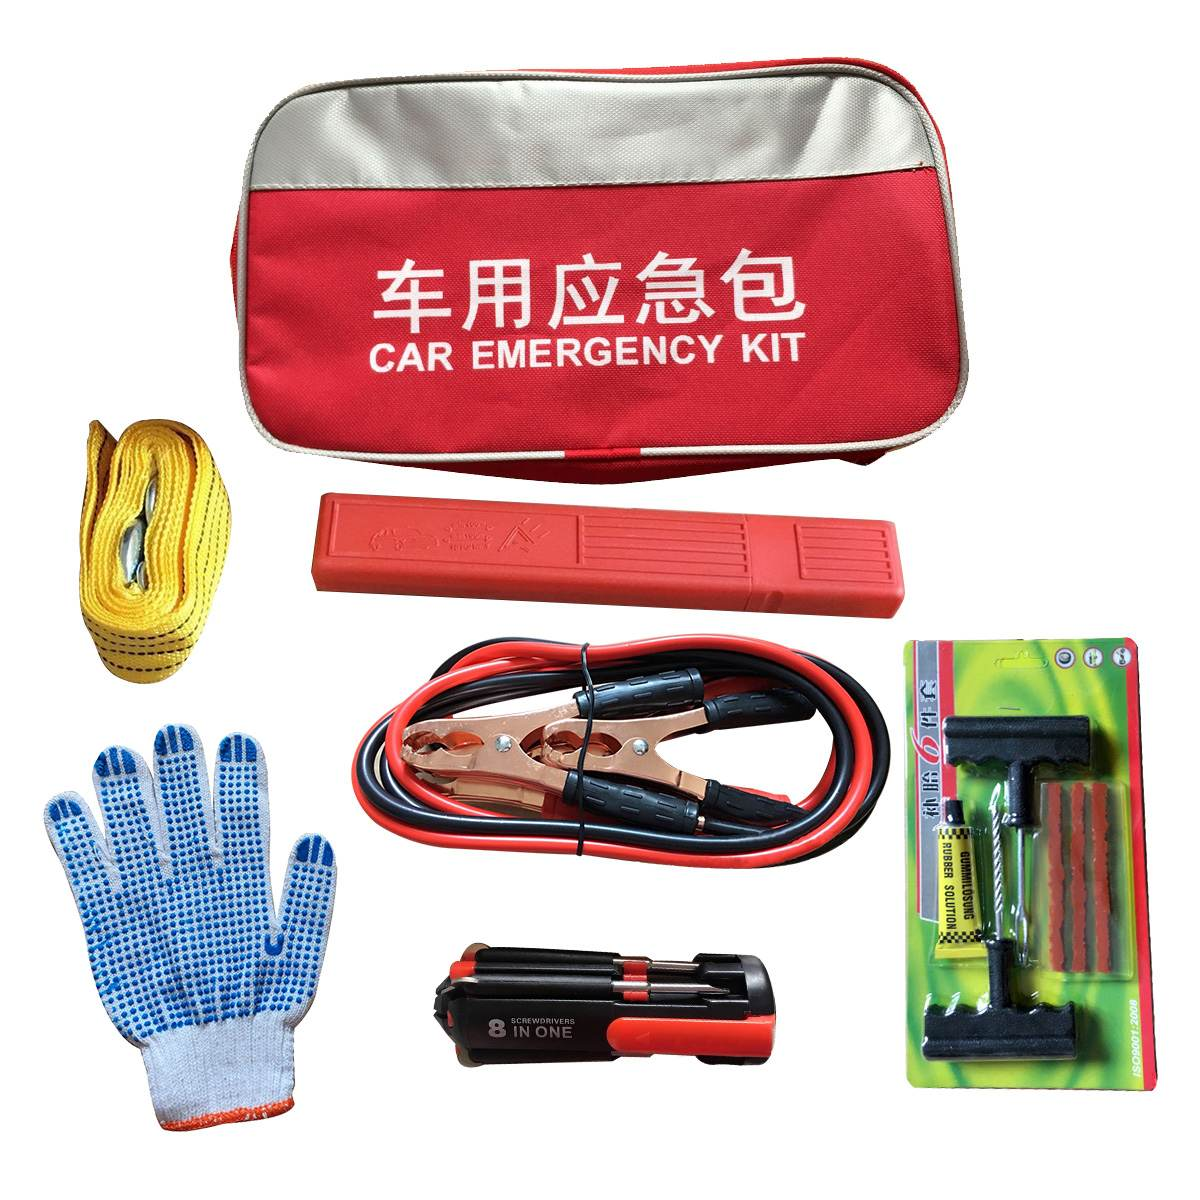 Universal Car Emergency Kit Vehicle Road Rescue Tool Outdoor Safety Survival Equipment Set Sport Travel Kit Unlock First Aid Kit